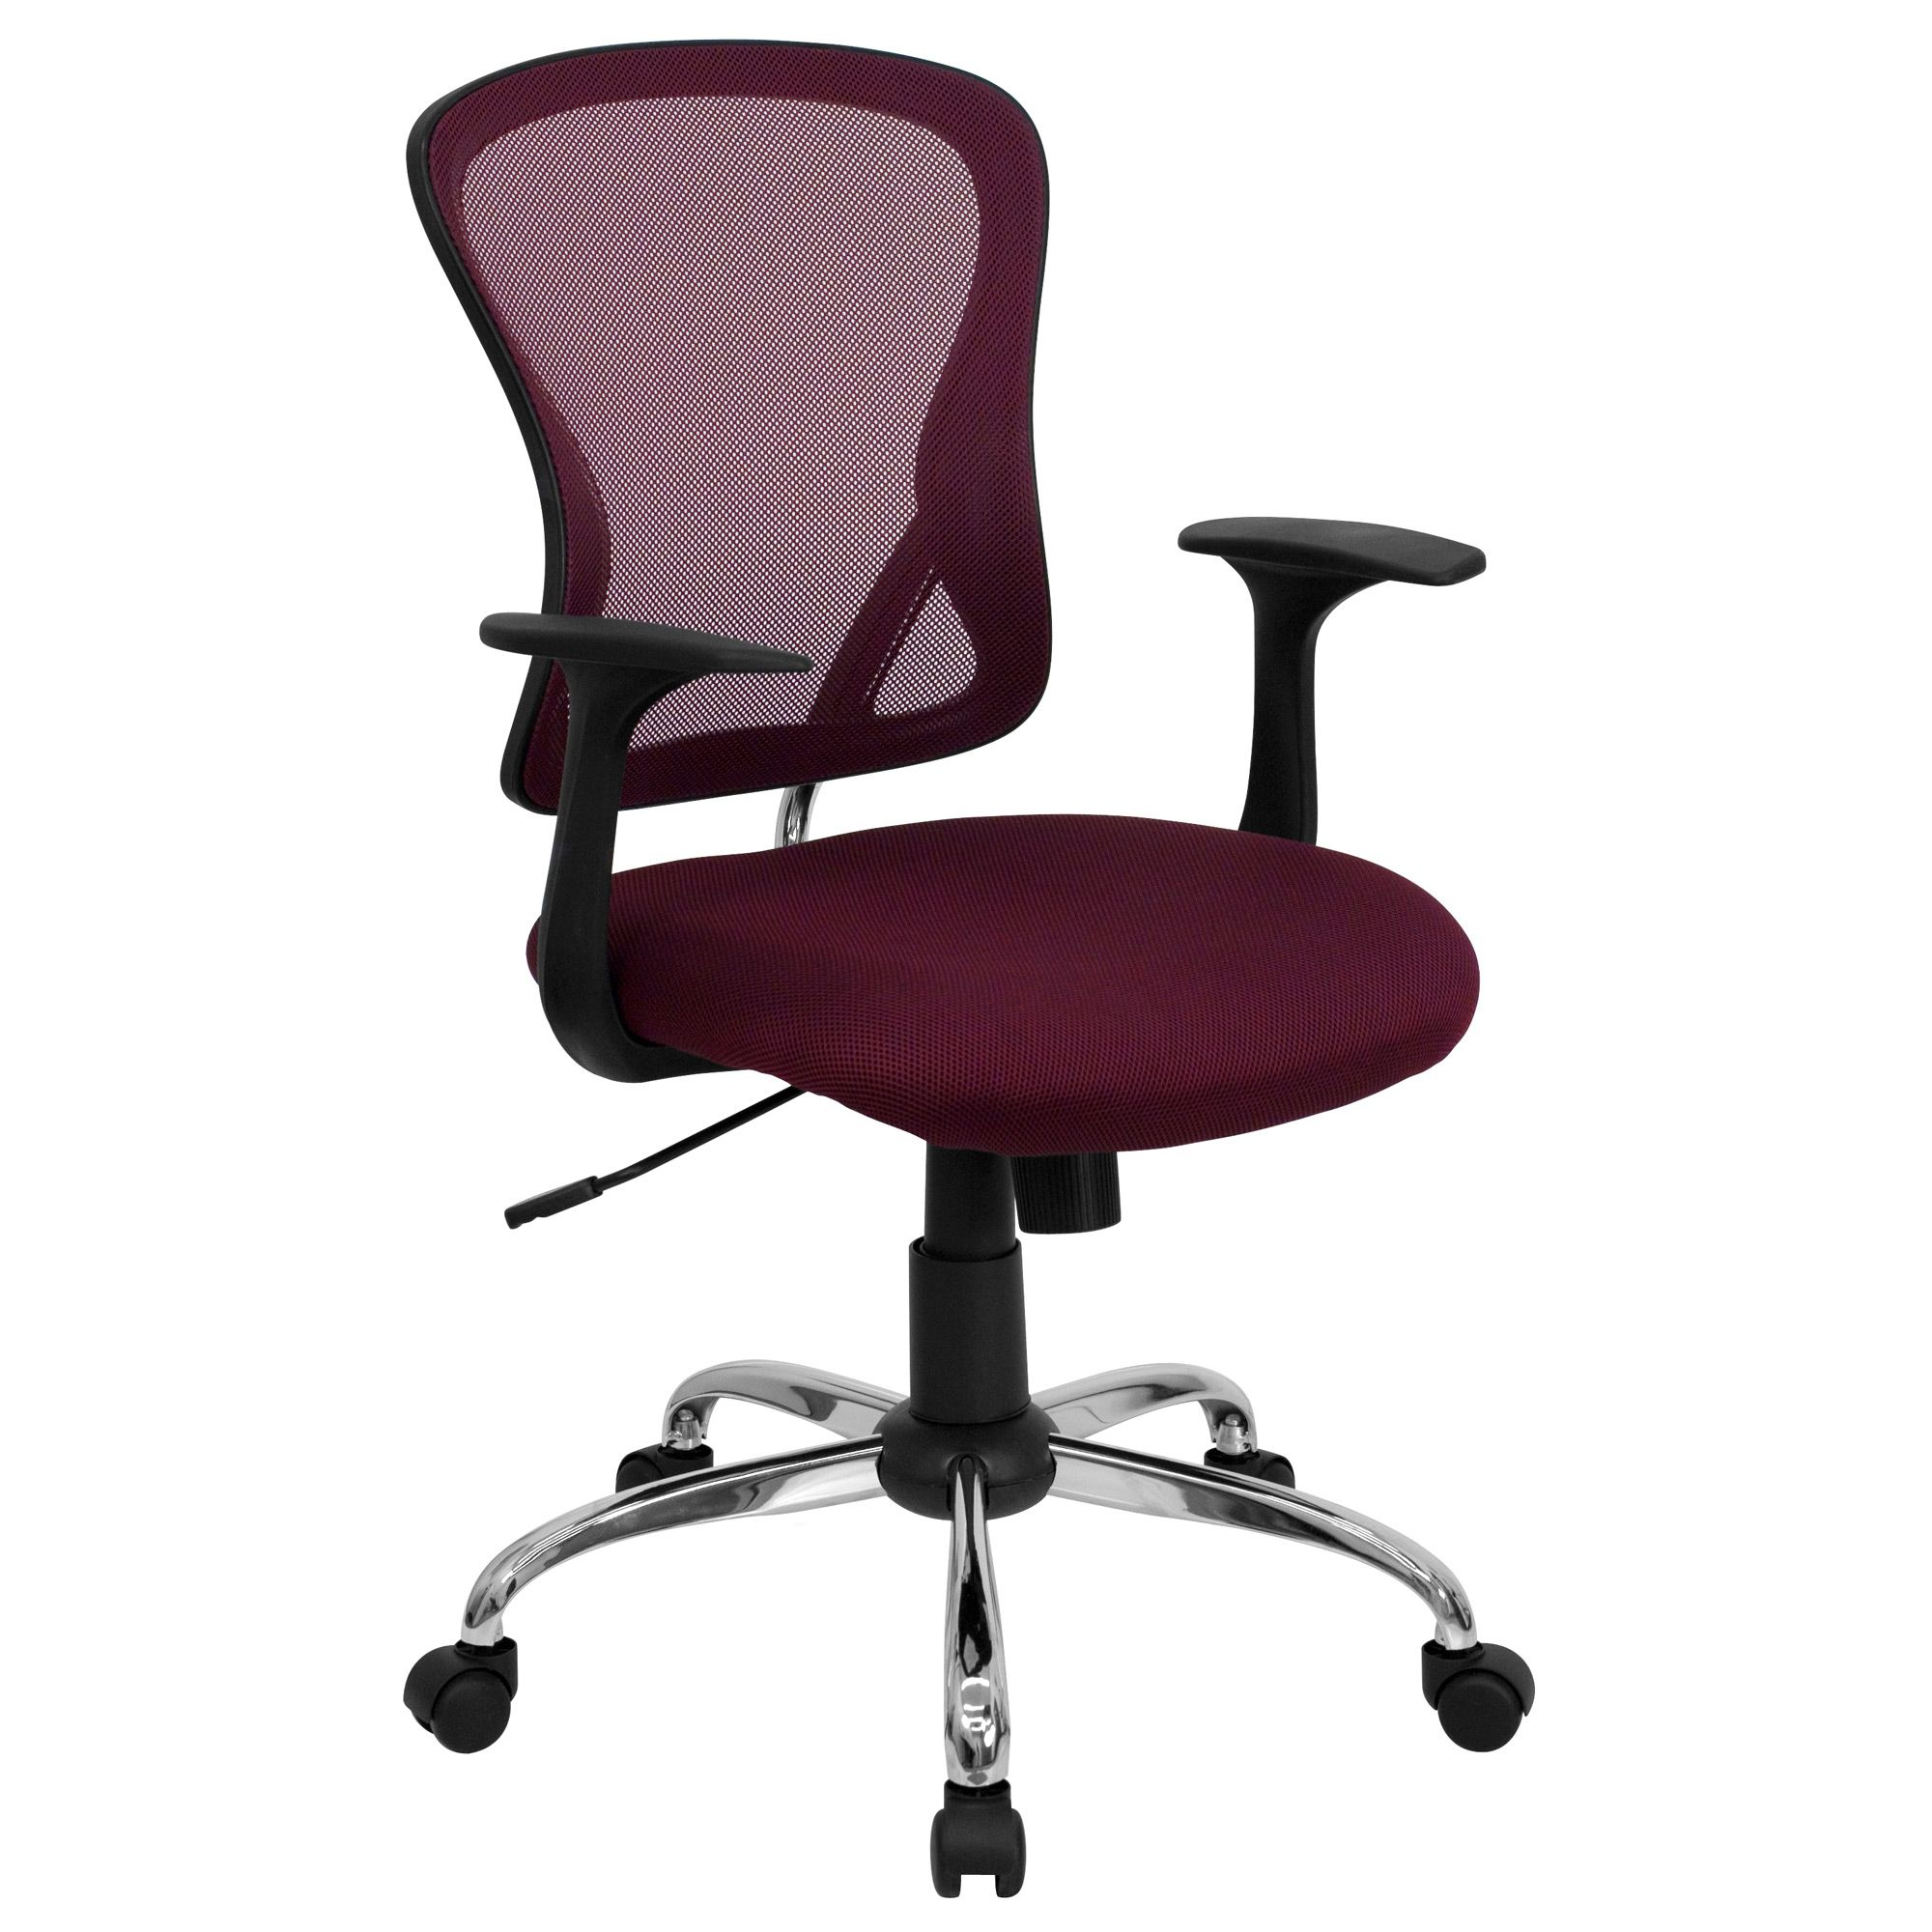 cool desk chair. The \u201cFlare\u201d These Cool Desk Chairs (in Burgundy) Sport A Contemporary Open Mesh Back With Passive Lumbar Support And Nicely Padded Seat Upholstered In Chair S